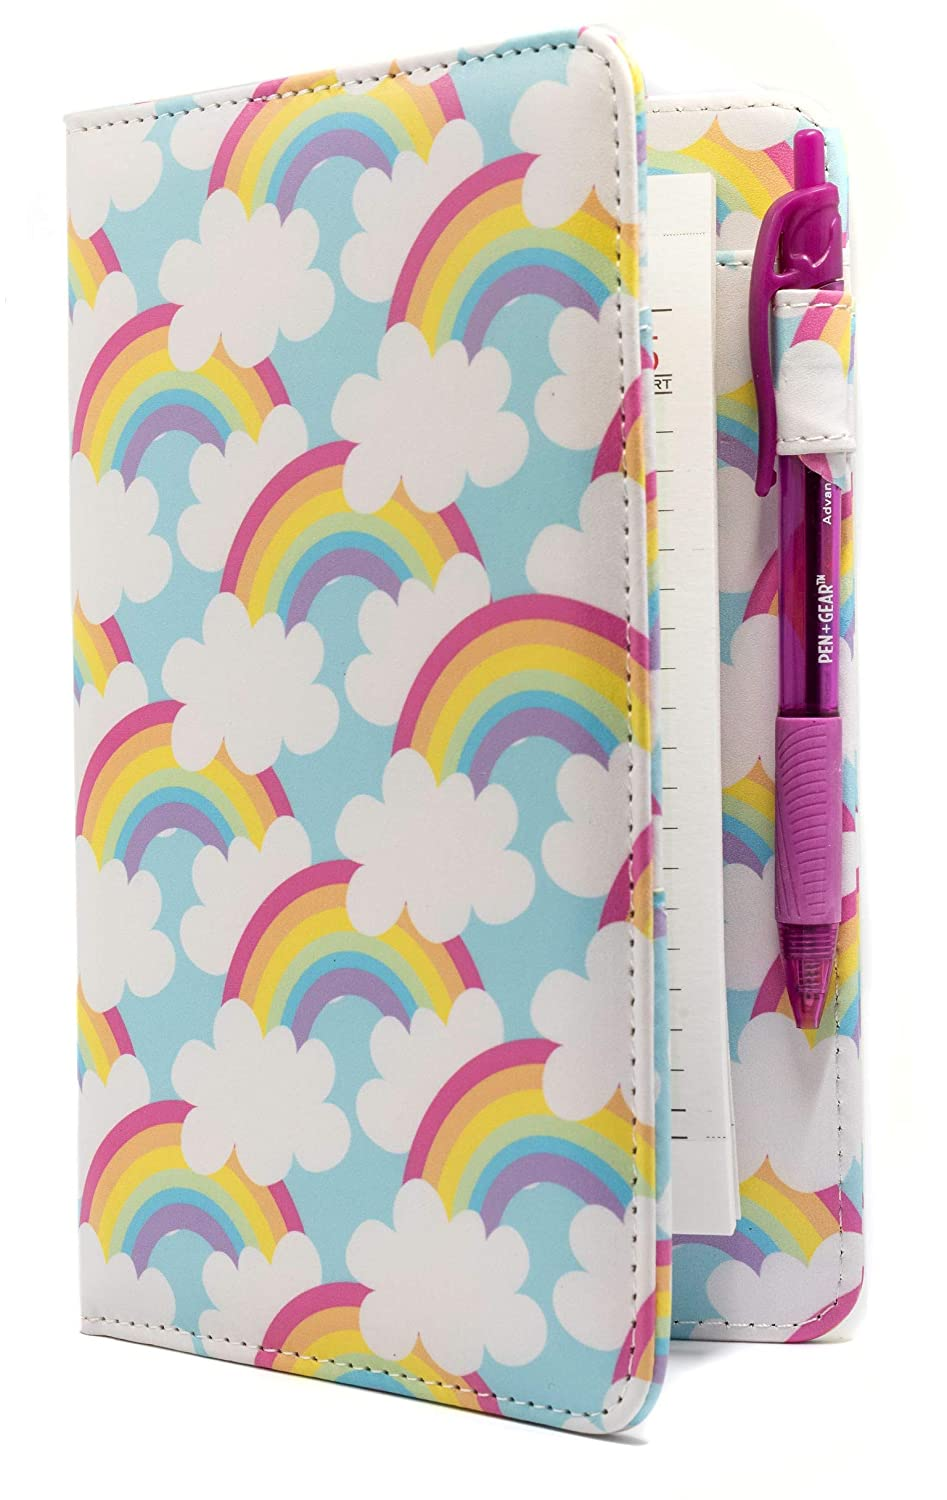 Industry Night Rainbows and Clouds Cute Server Book Organizer/Blue Server Wallet for Waitresses